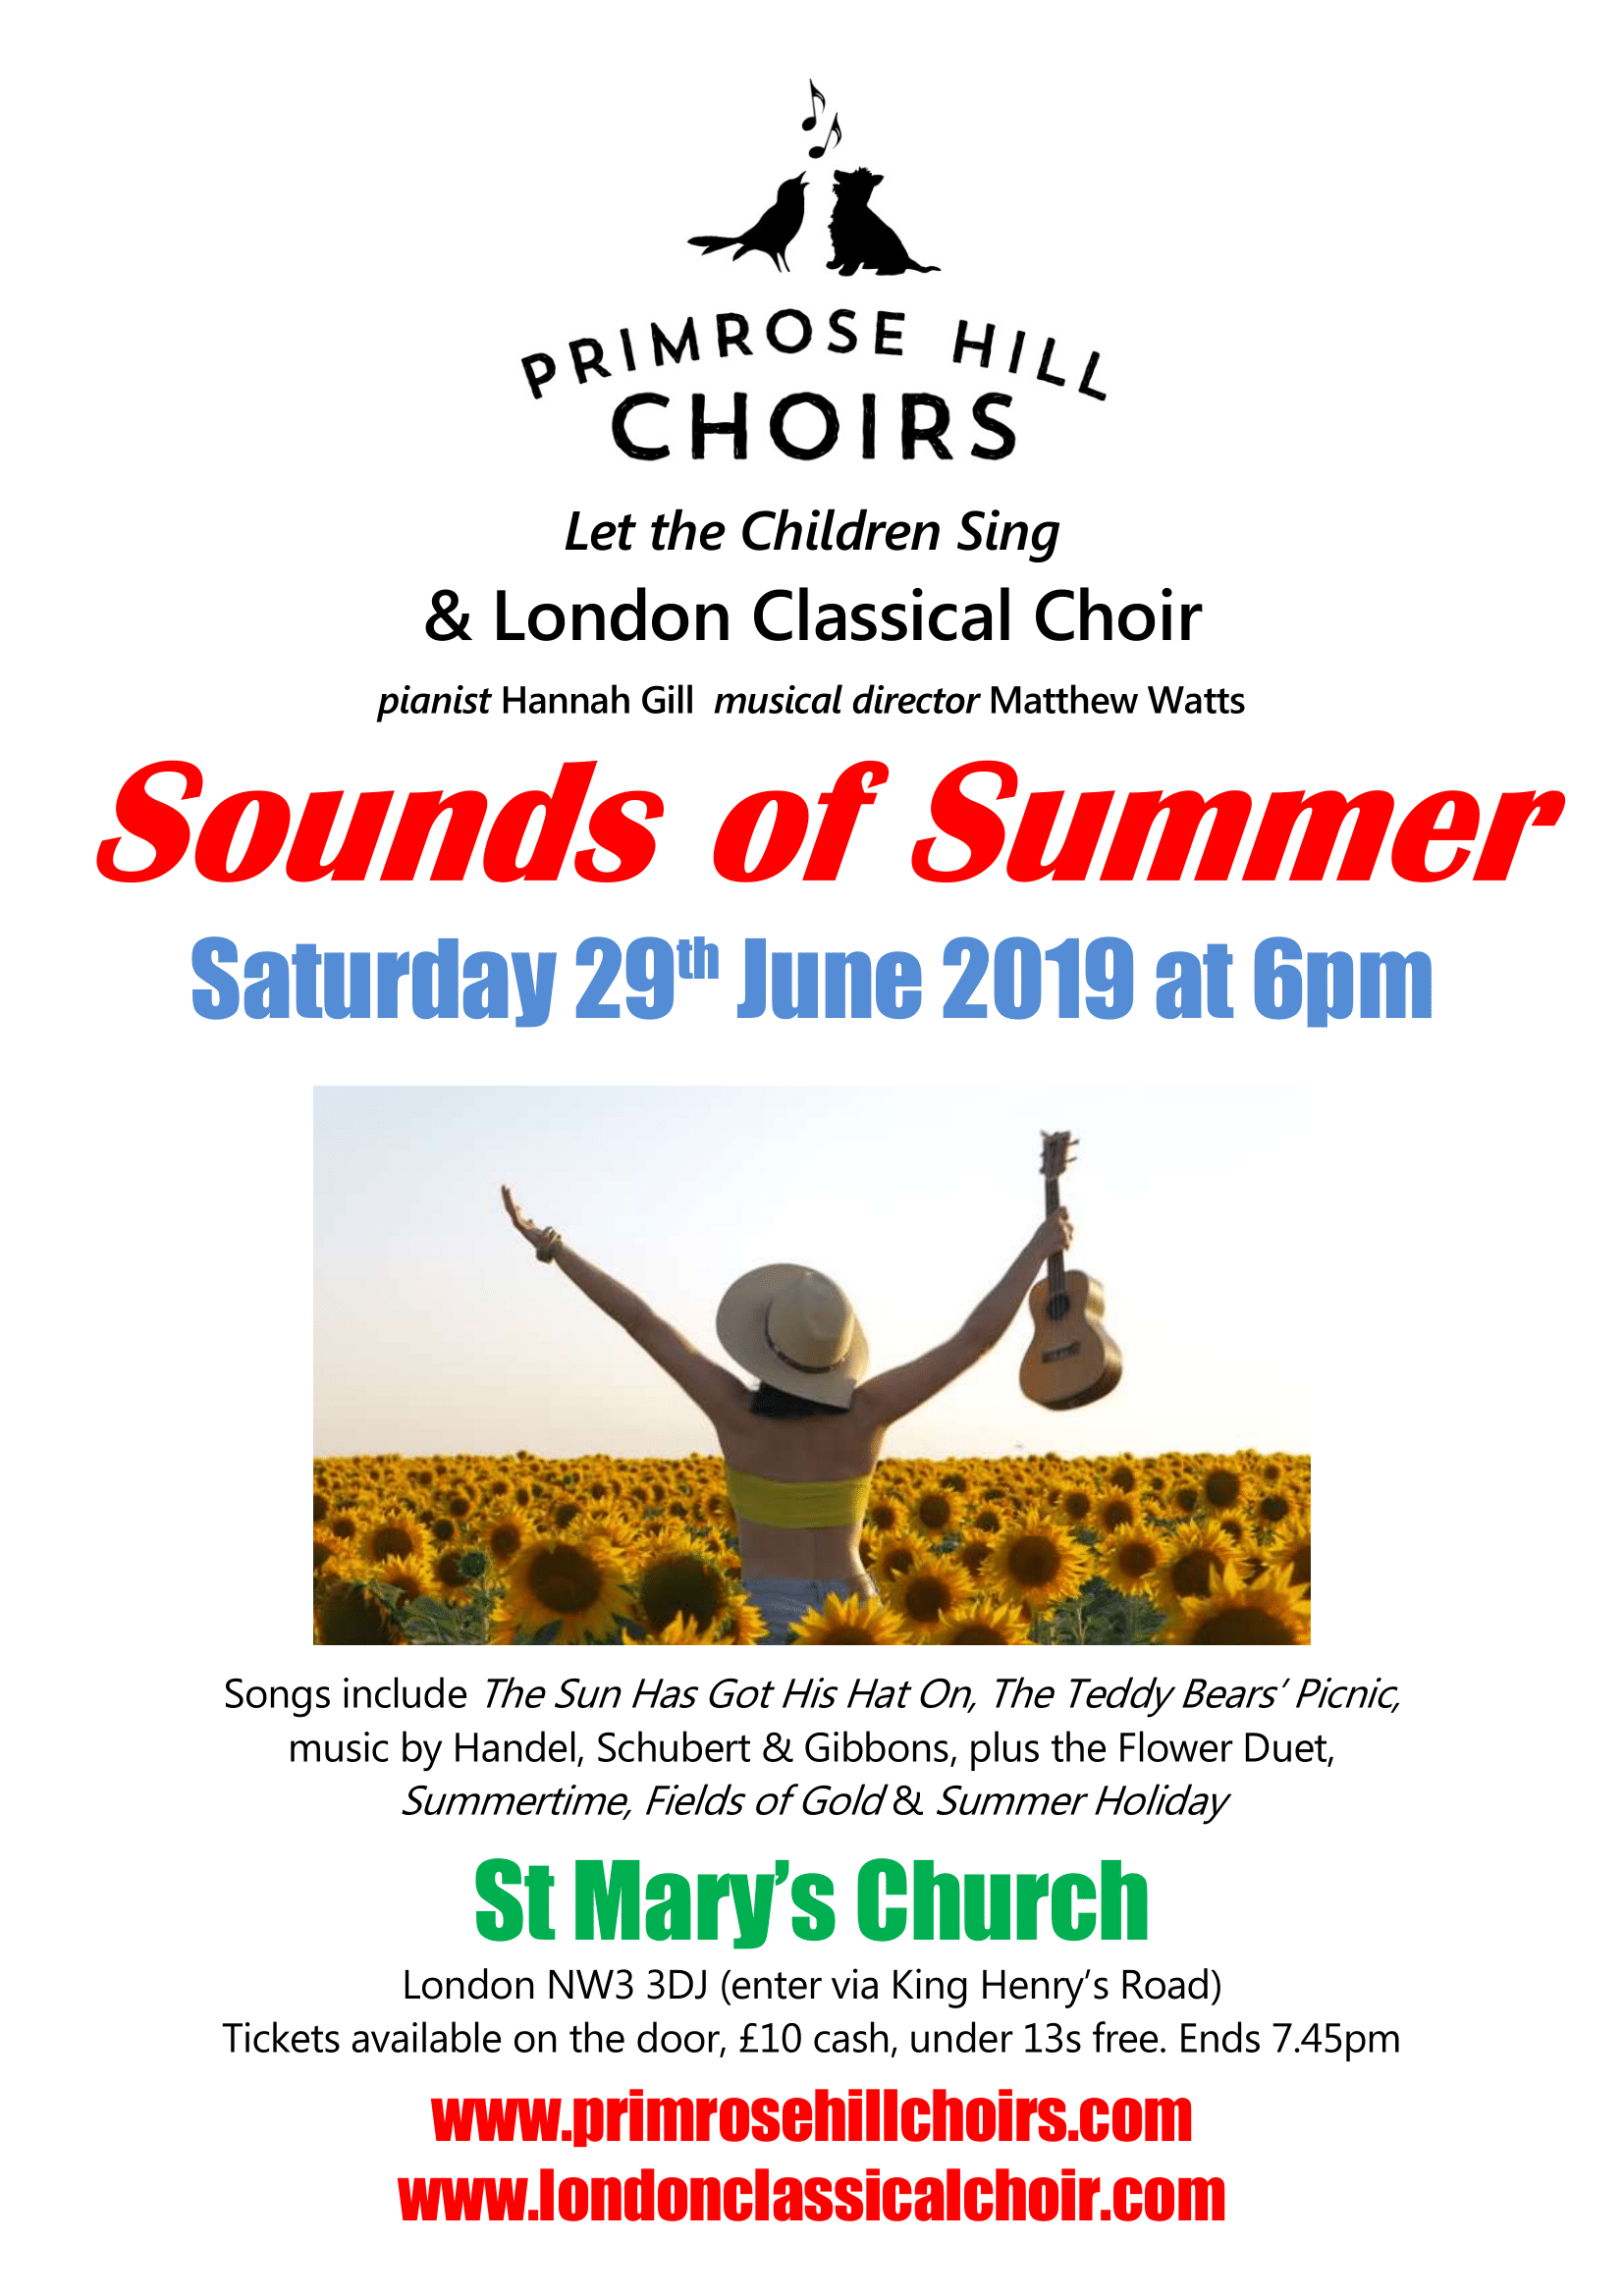 PHC poster 2019 Sounds of Summer 29 June pdf-1.png